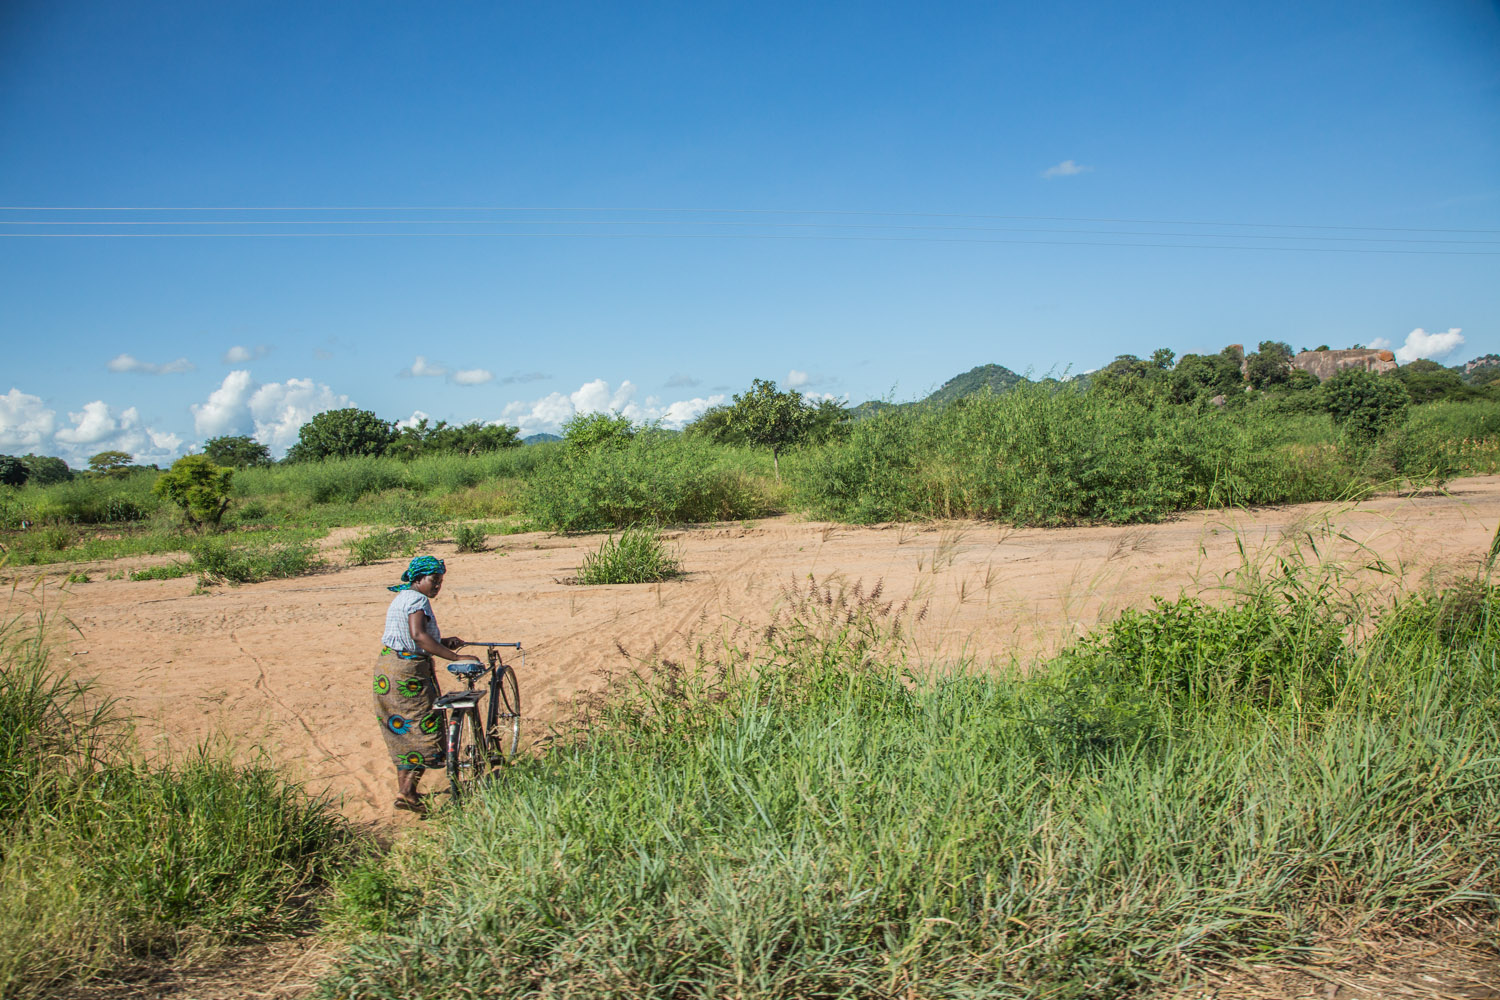 Malawian woman pushes bicycle across desert-like land